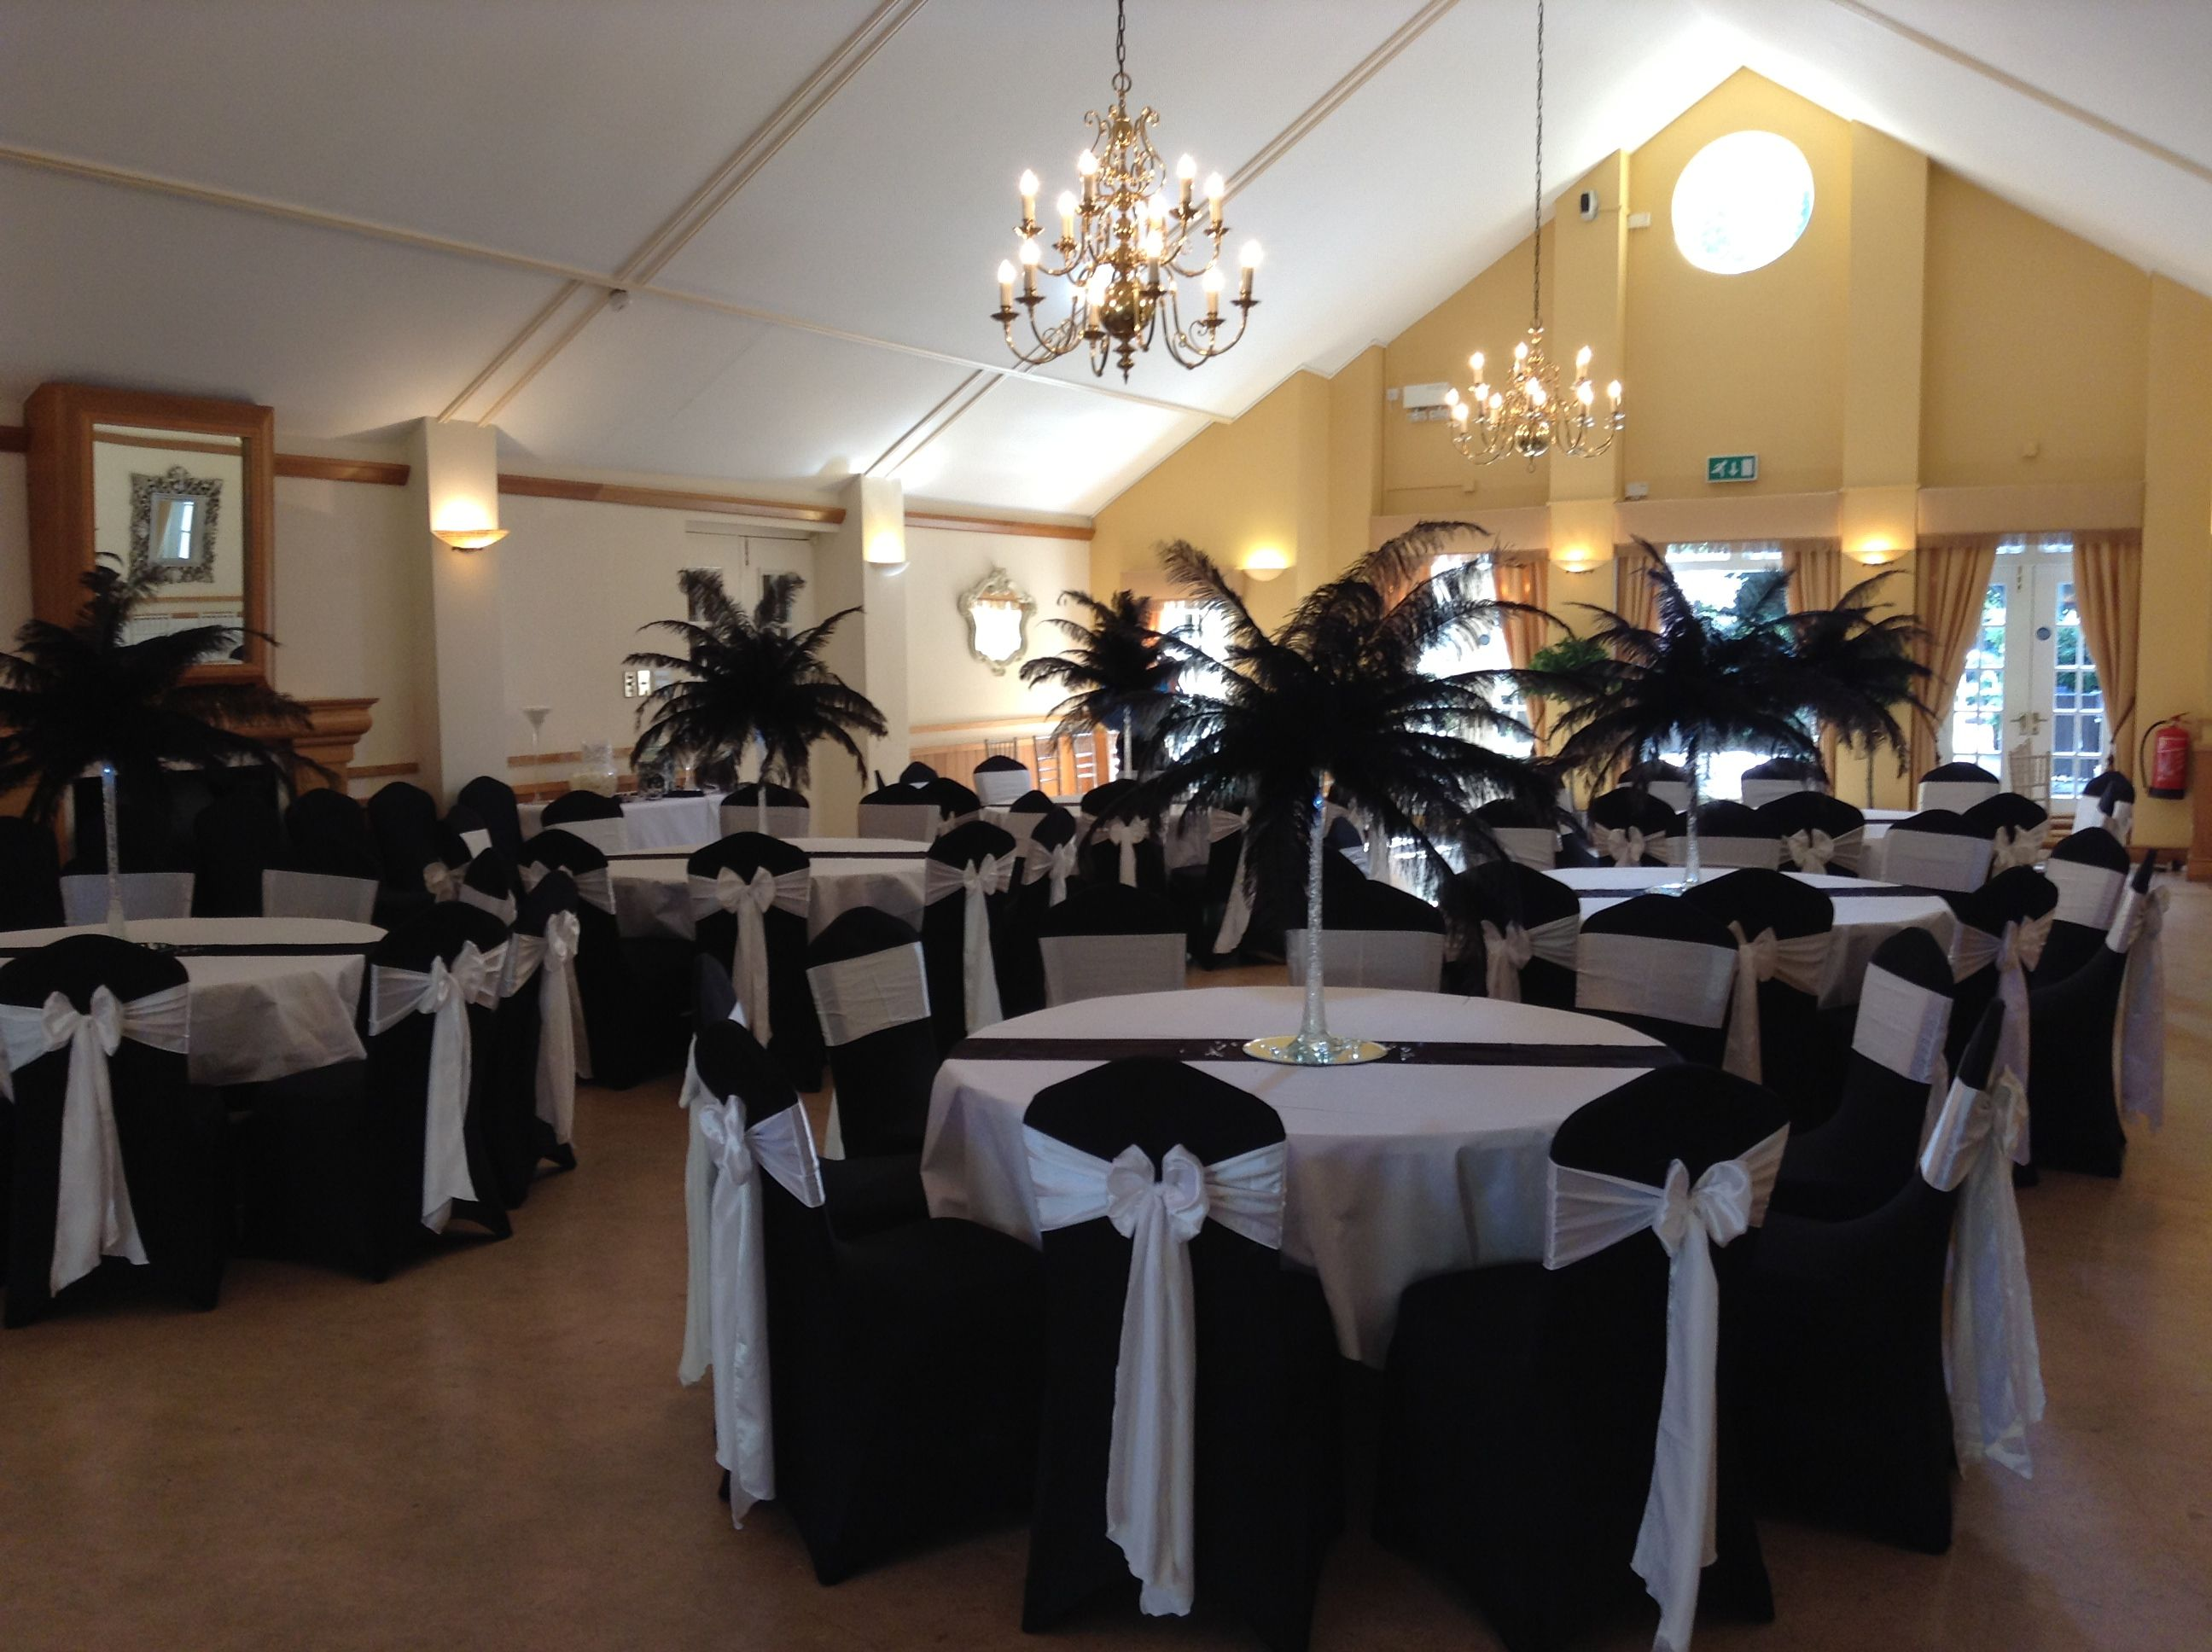 Black chair cover with white satin sash seat covers and bows